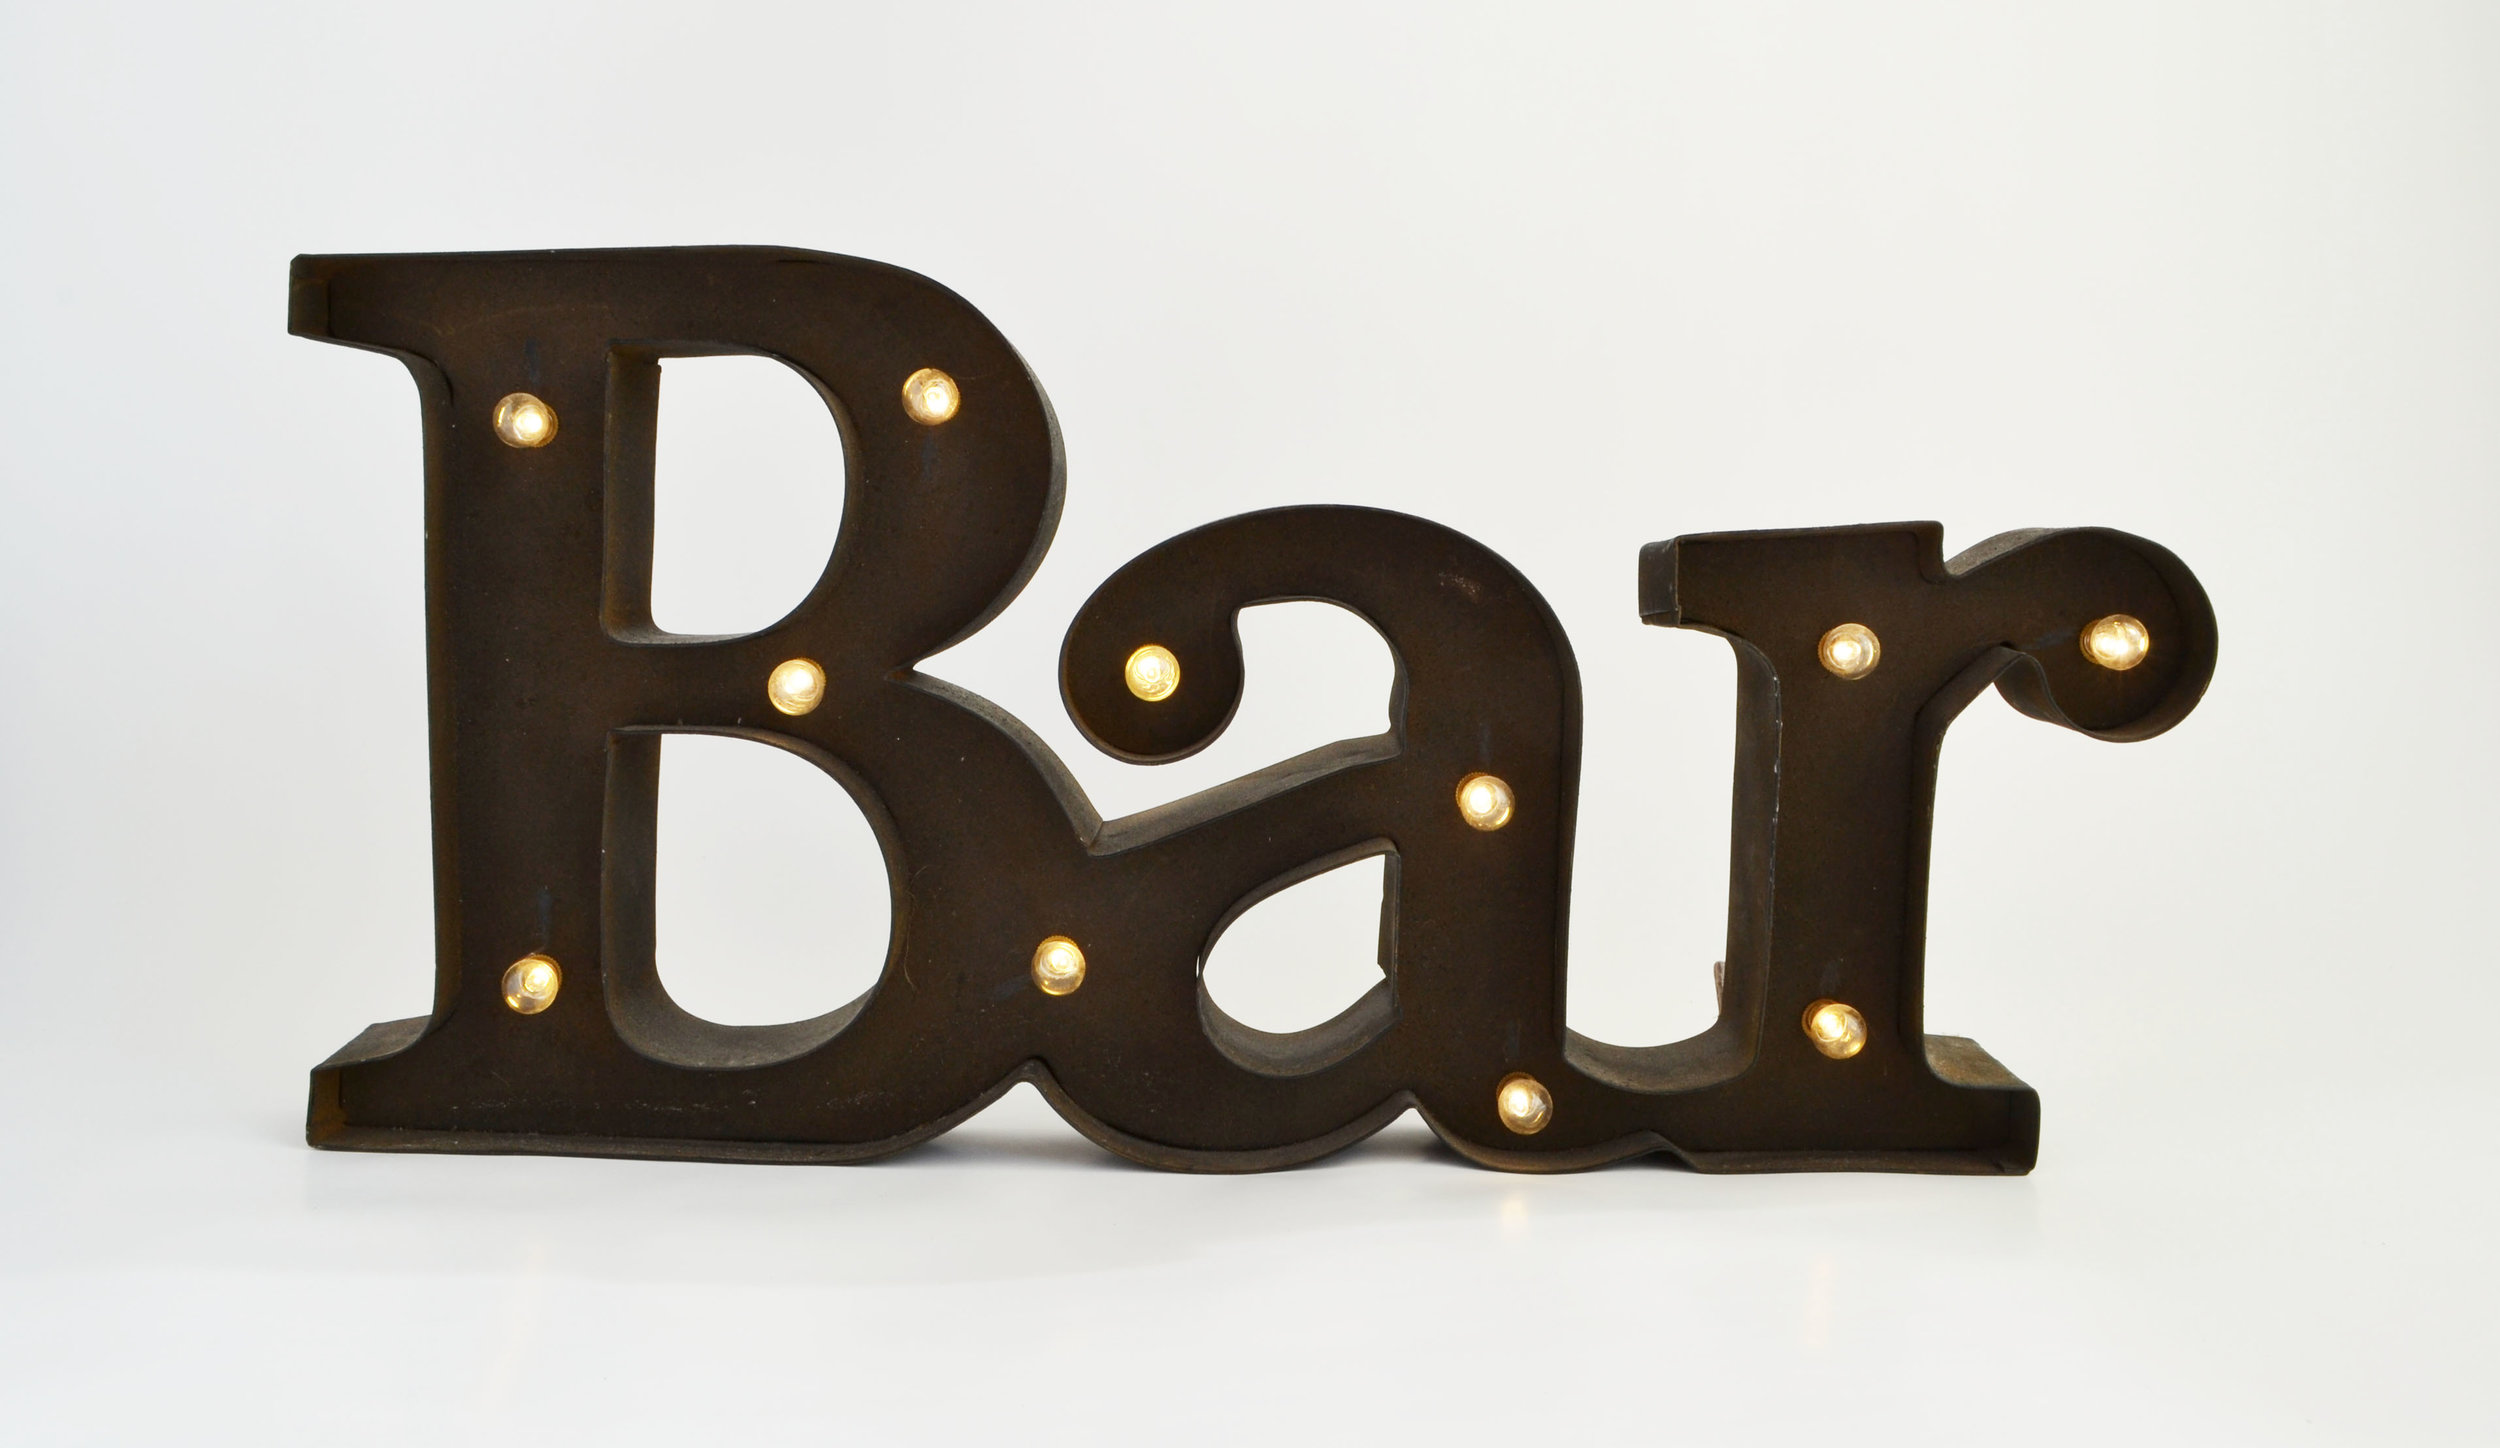 metal marquee 'bar' sign   Quantity: 1  Price: $15.00